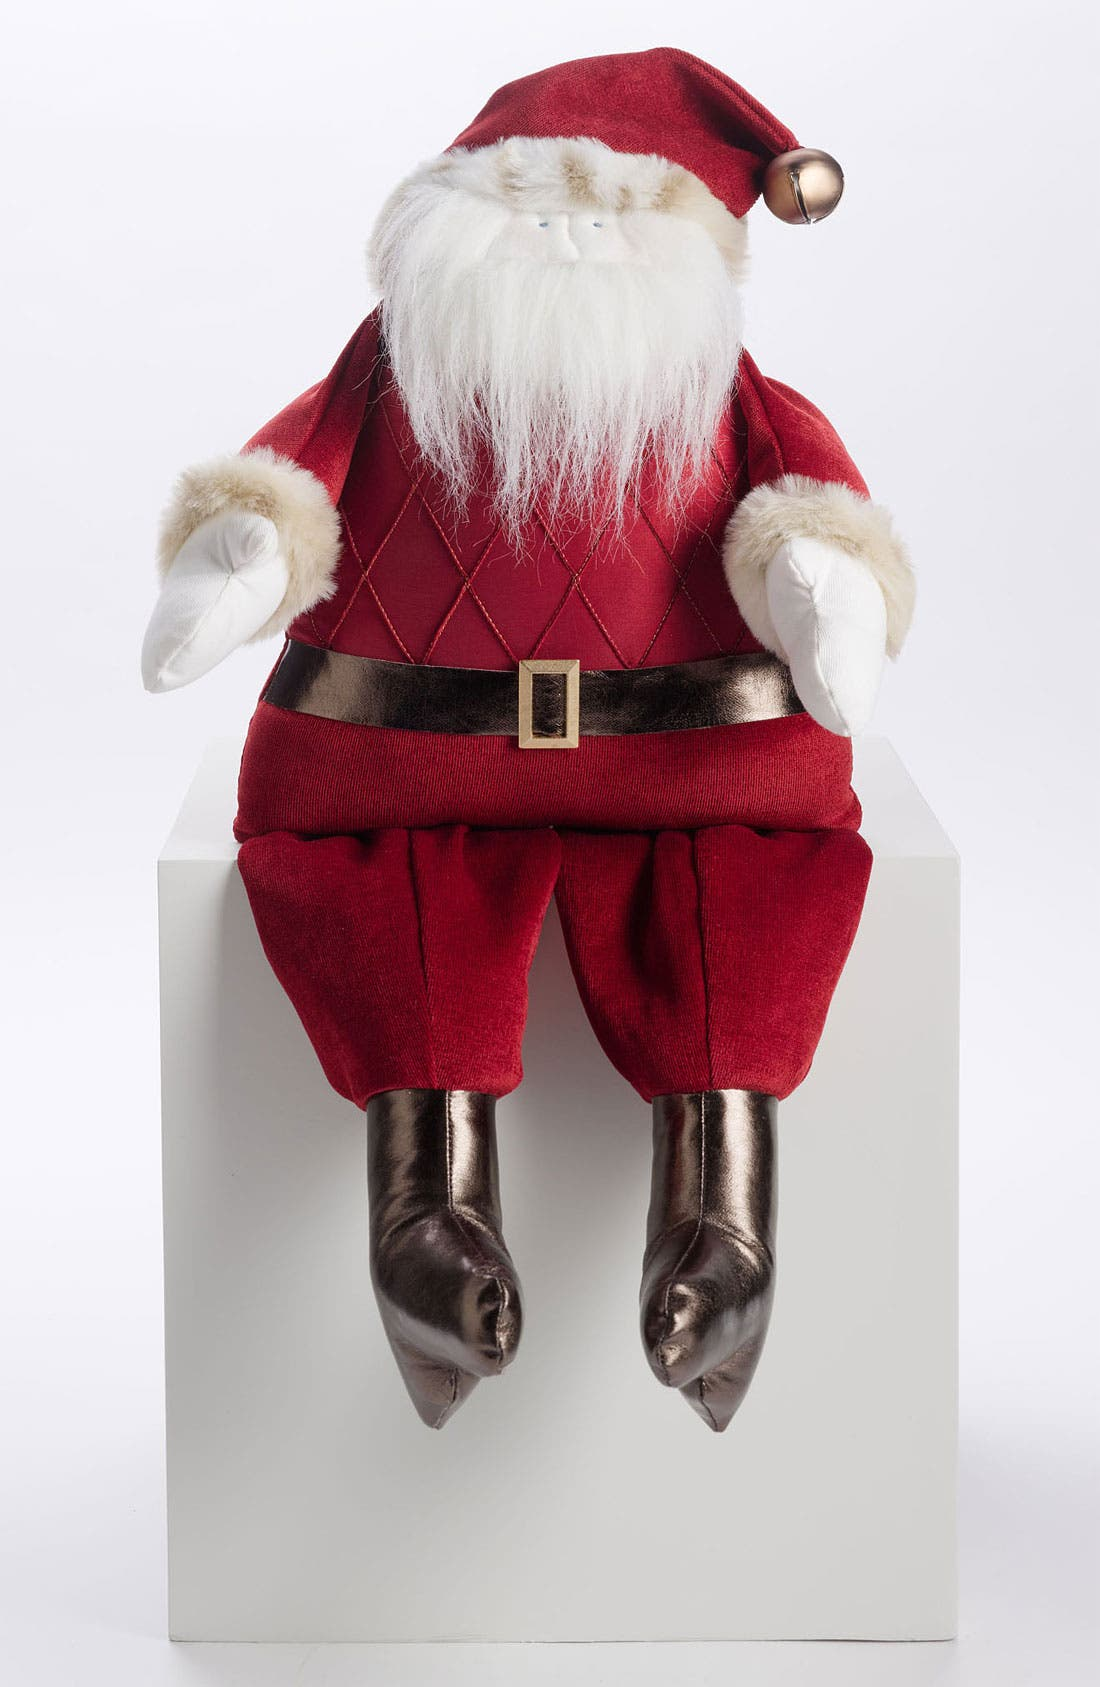 Alternate Image 1 Selected - Woof & Poof 'Extra Large' Musical Jolly Santa Decoration